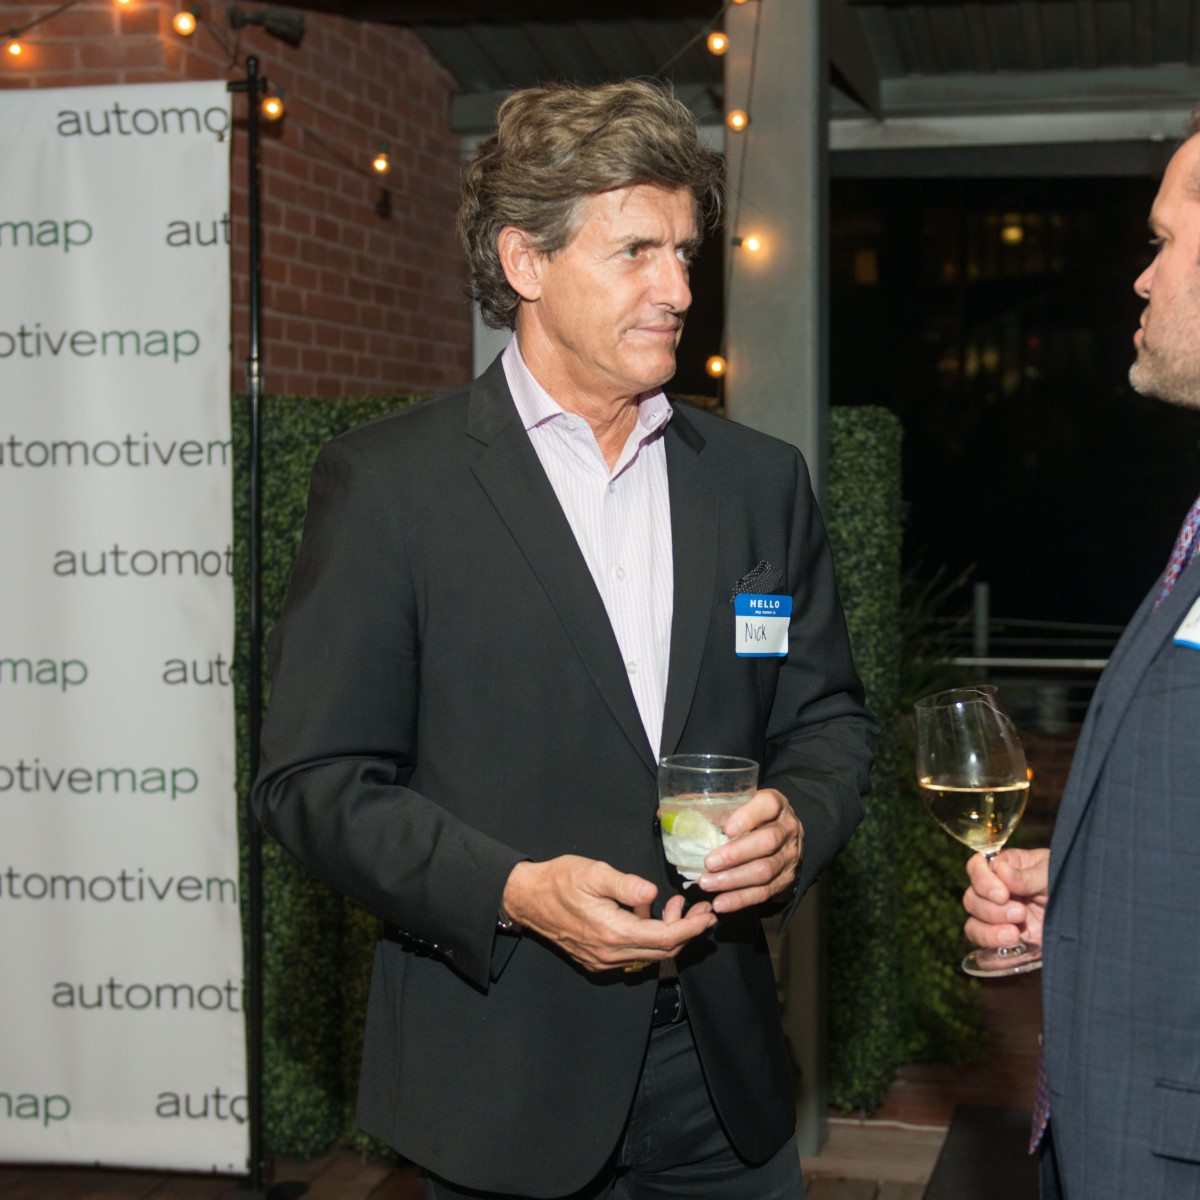 Automotive Map launch party 2019 Nick Florescu and Chris Dvorachek